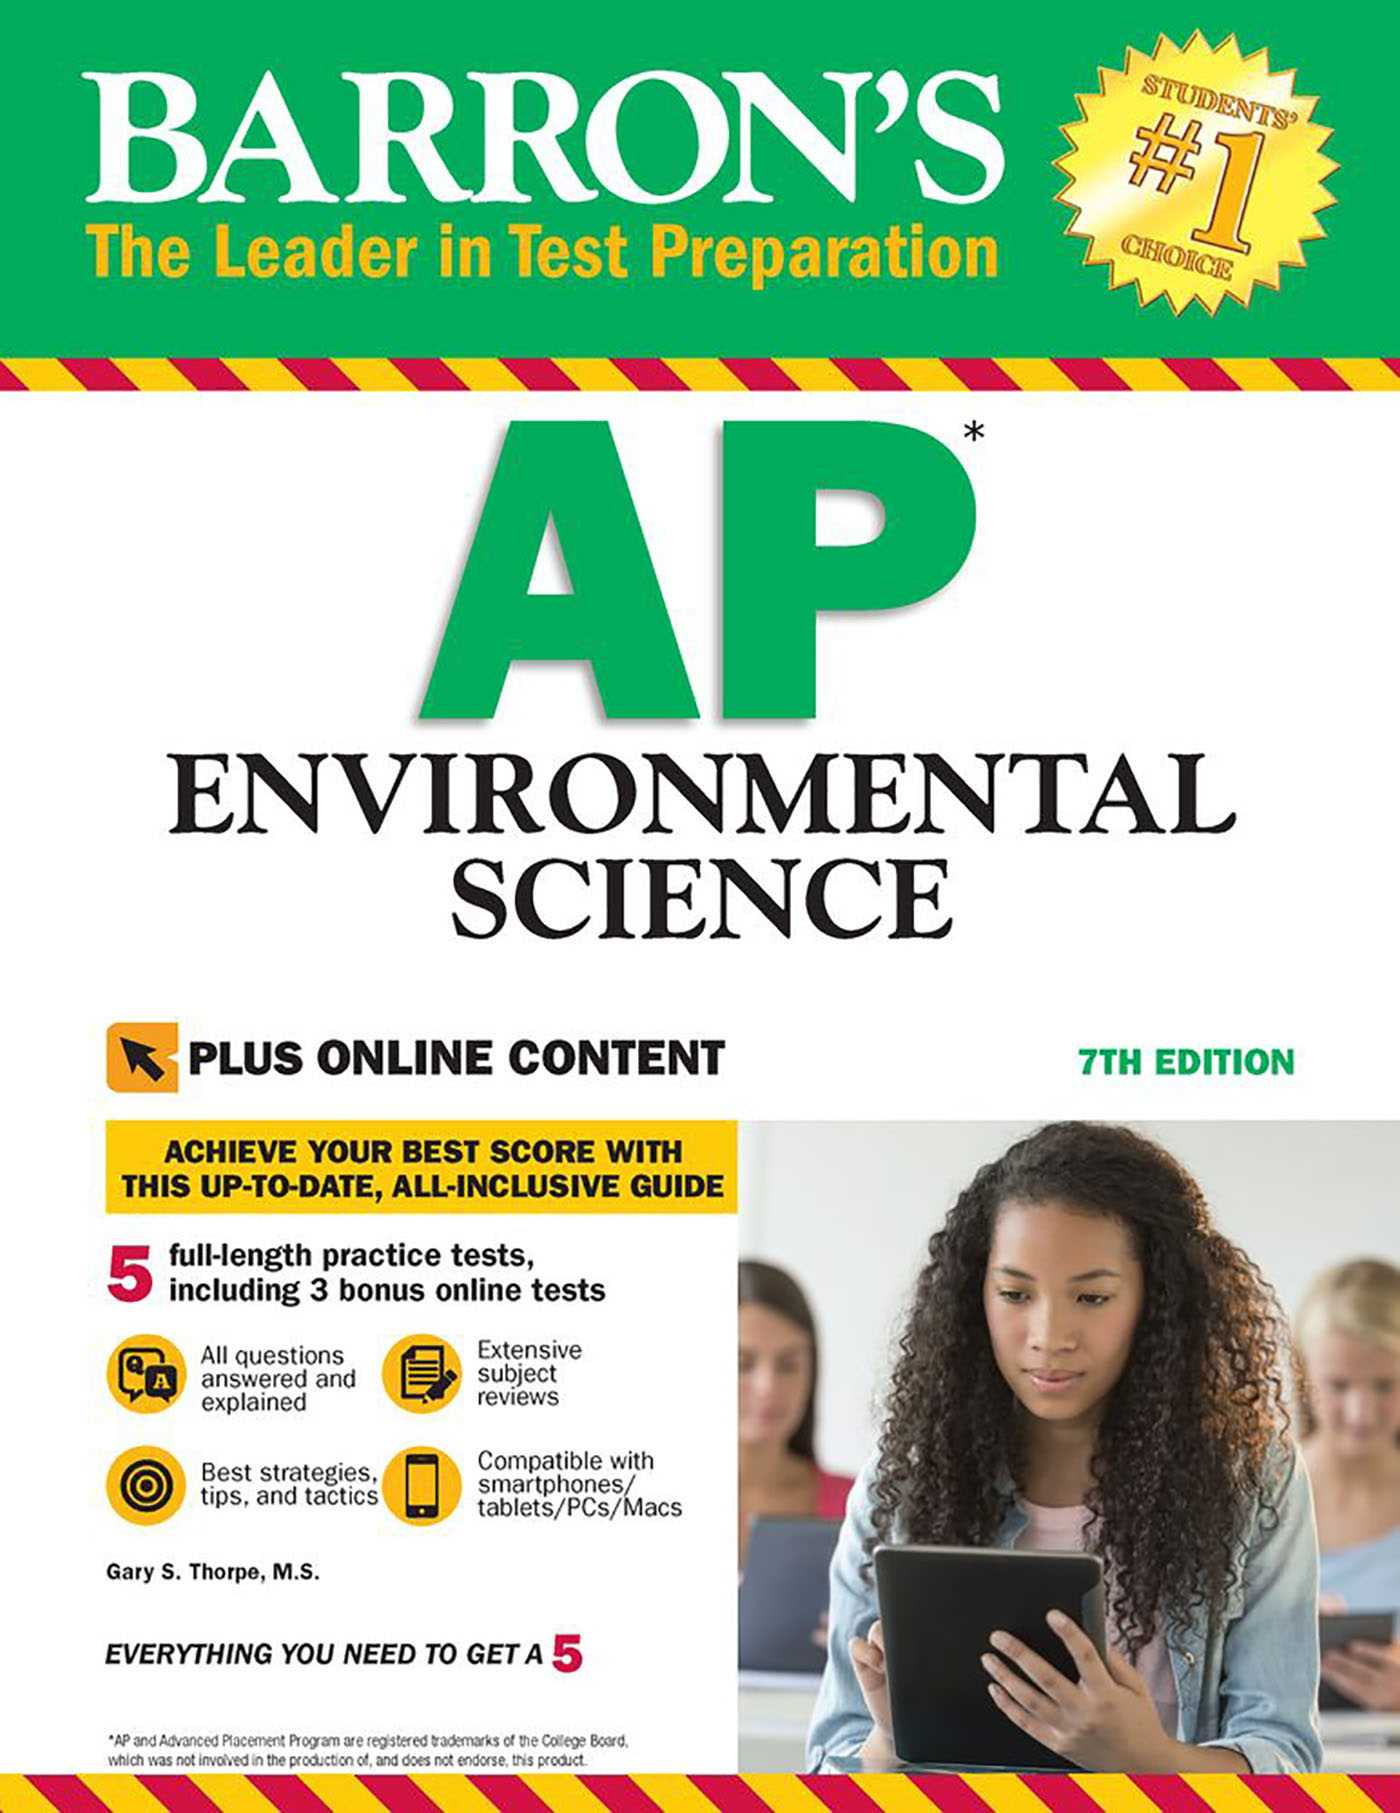 Book Cover Image (jpg): Barron's AP Environmental Science with Online Tests